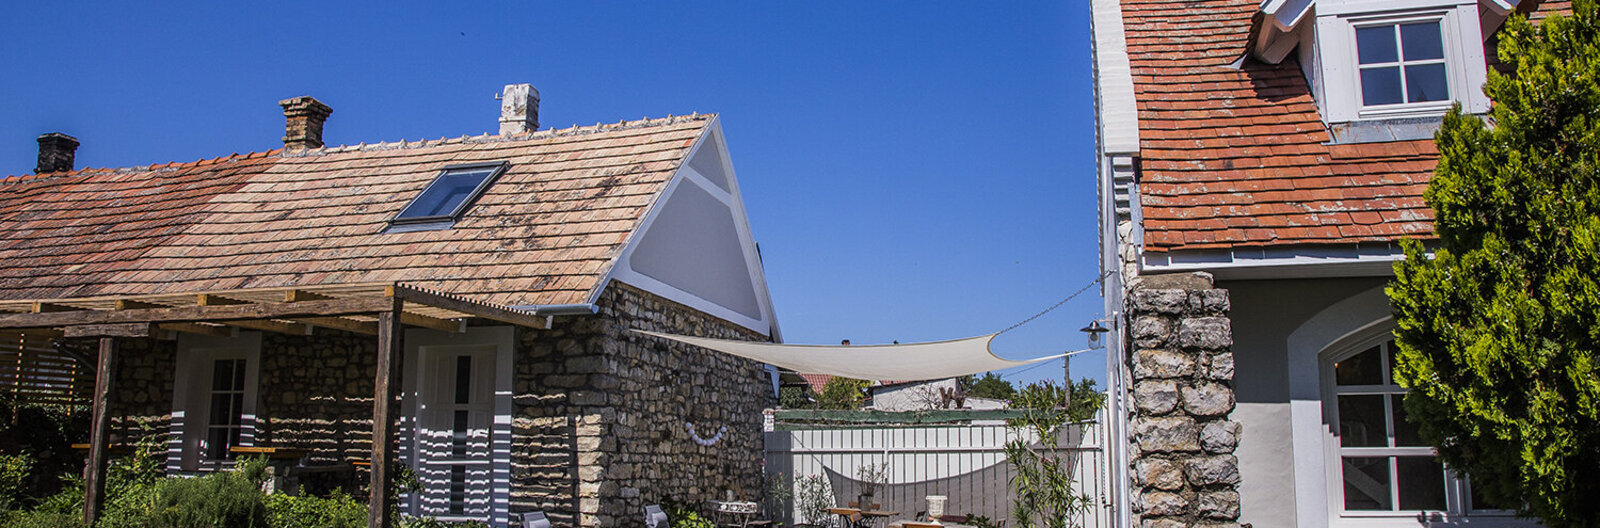 From barns to mansions – Balaton guesthouse that stay open in fall